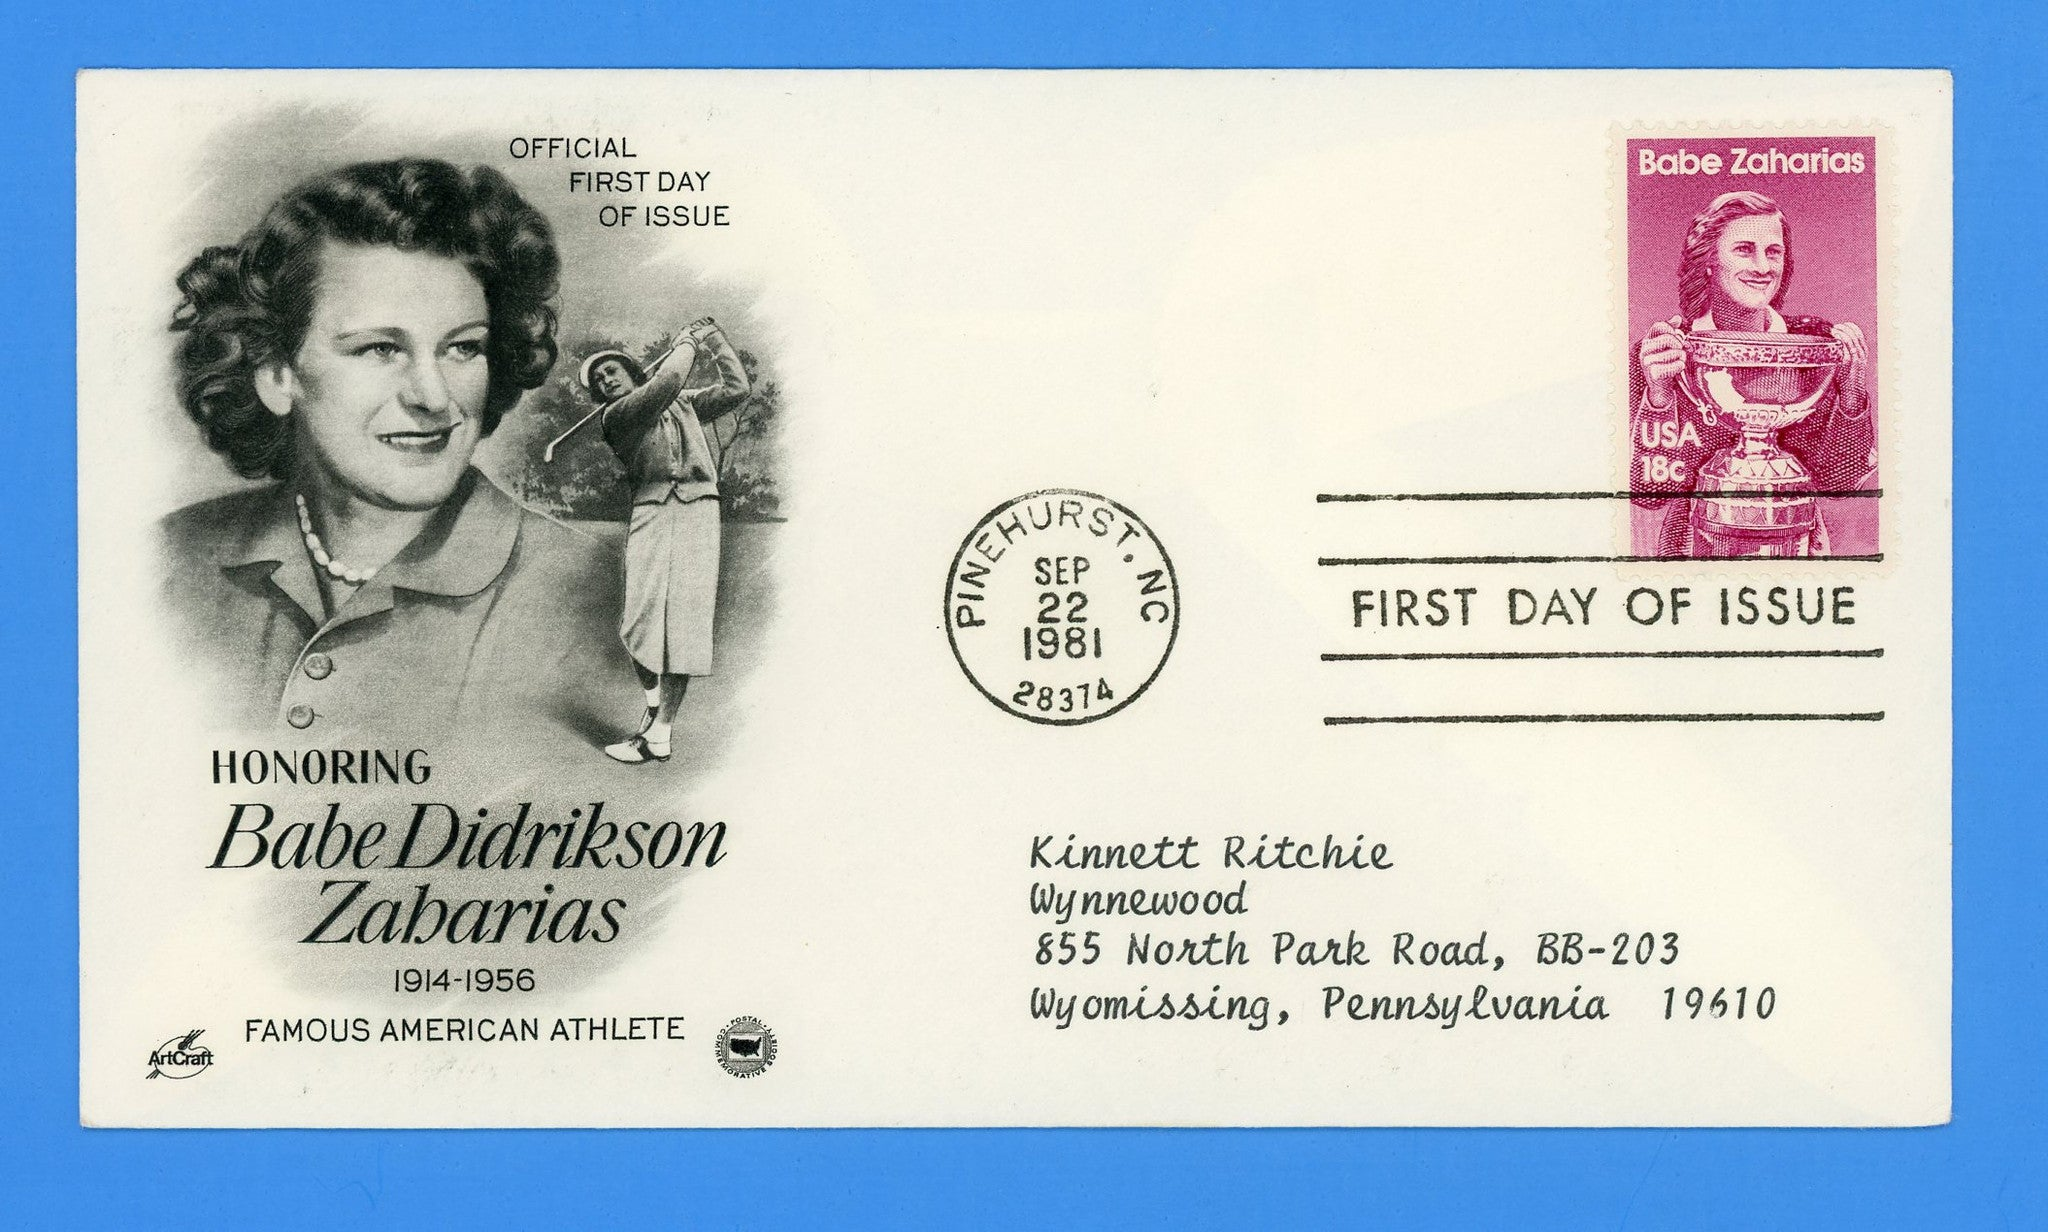 Babe Zaharias Golf First Day Cover by Artcraft/Postal Commemorative Society